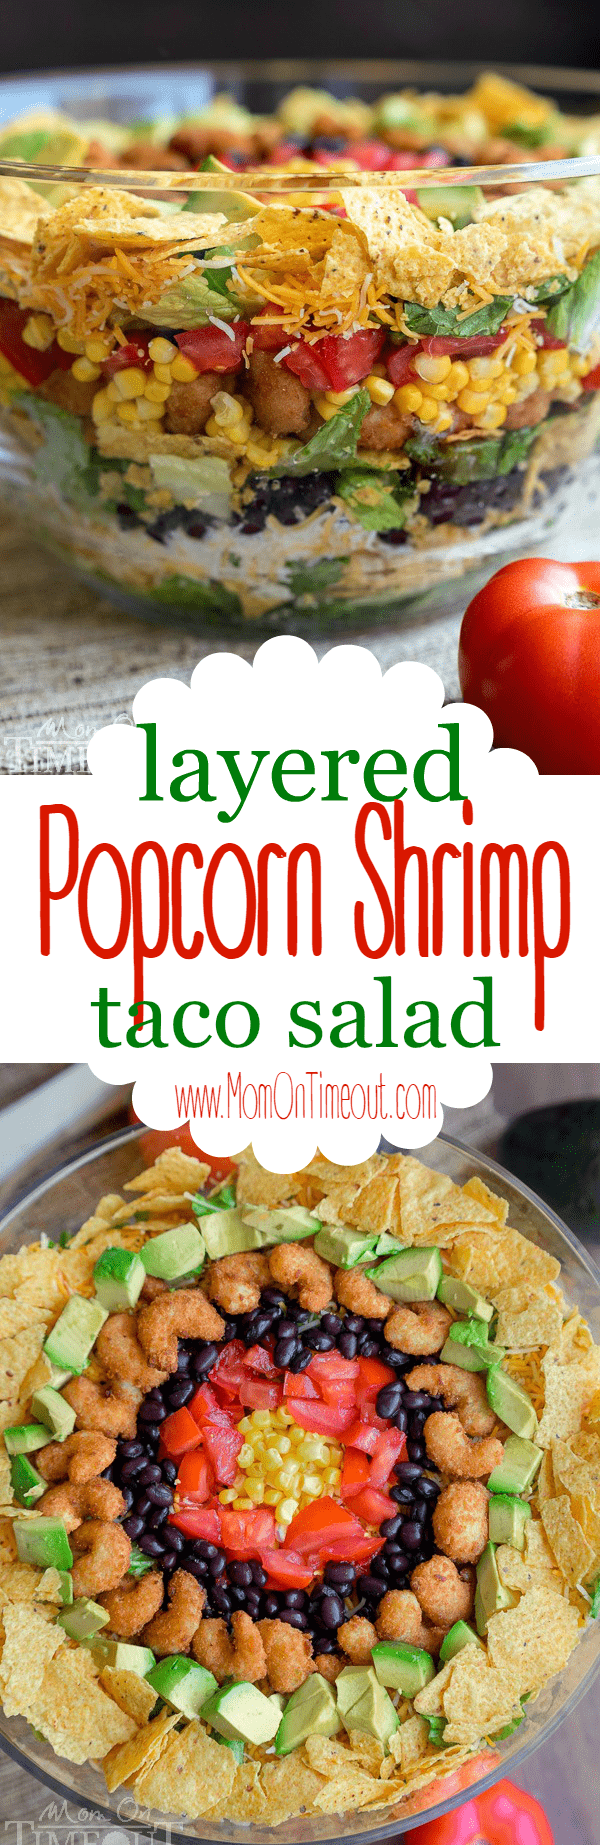 This delicious Layered Popcorn Shrimp Taco Salad is perfect for an easy, breezy summer time meal! Layers and layers of flavor make this a dinner the whole family will love! | MomOnTimeout.com | #dinner #salad #ad